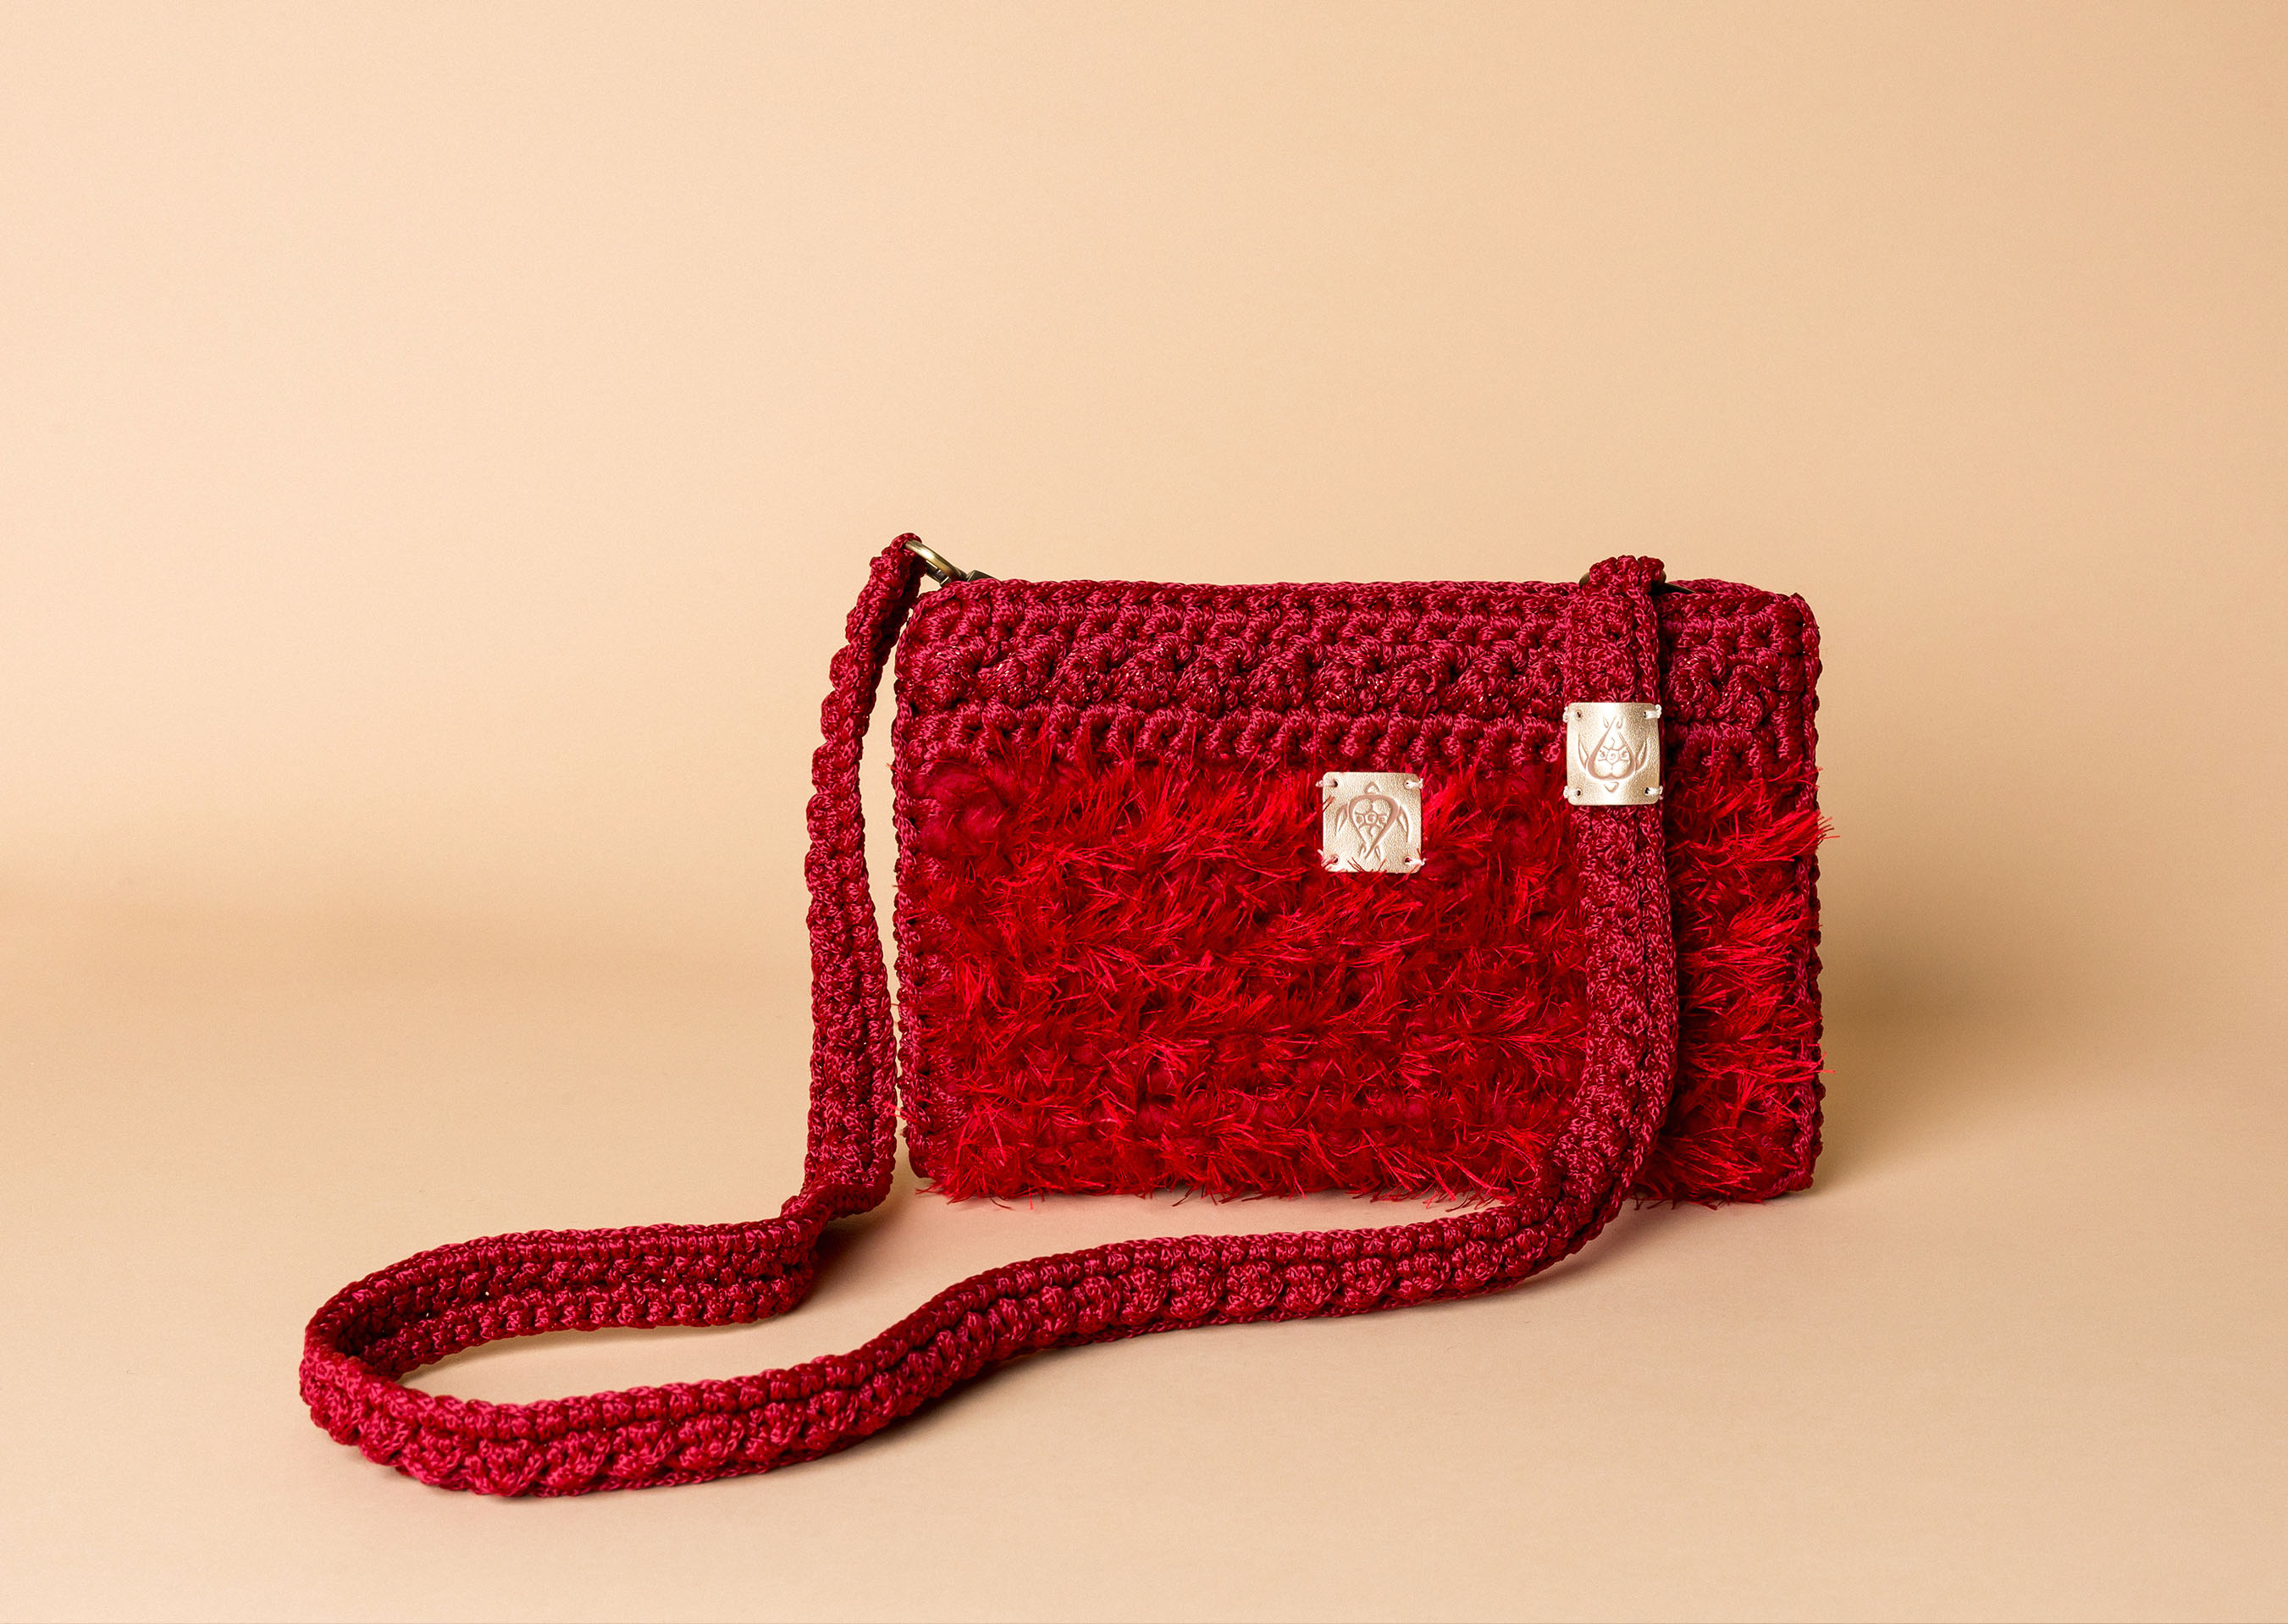 knitted bag petit in red